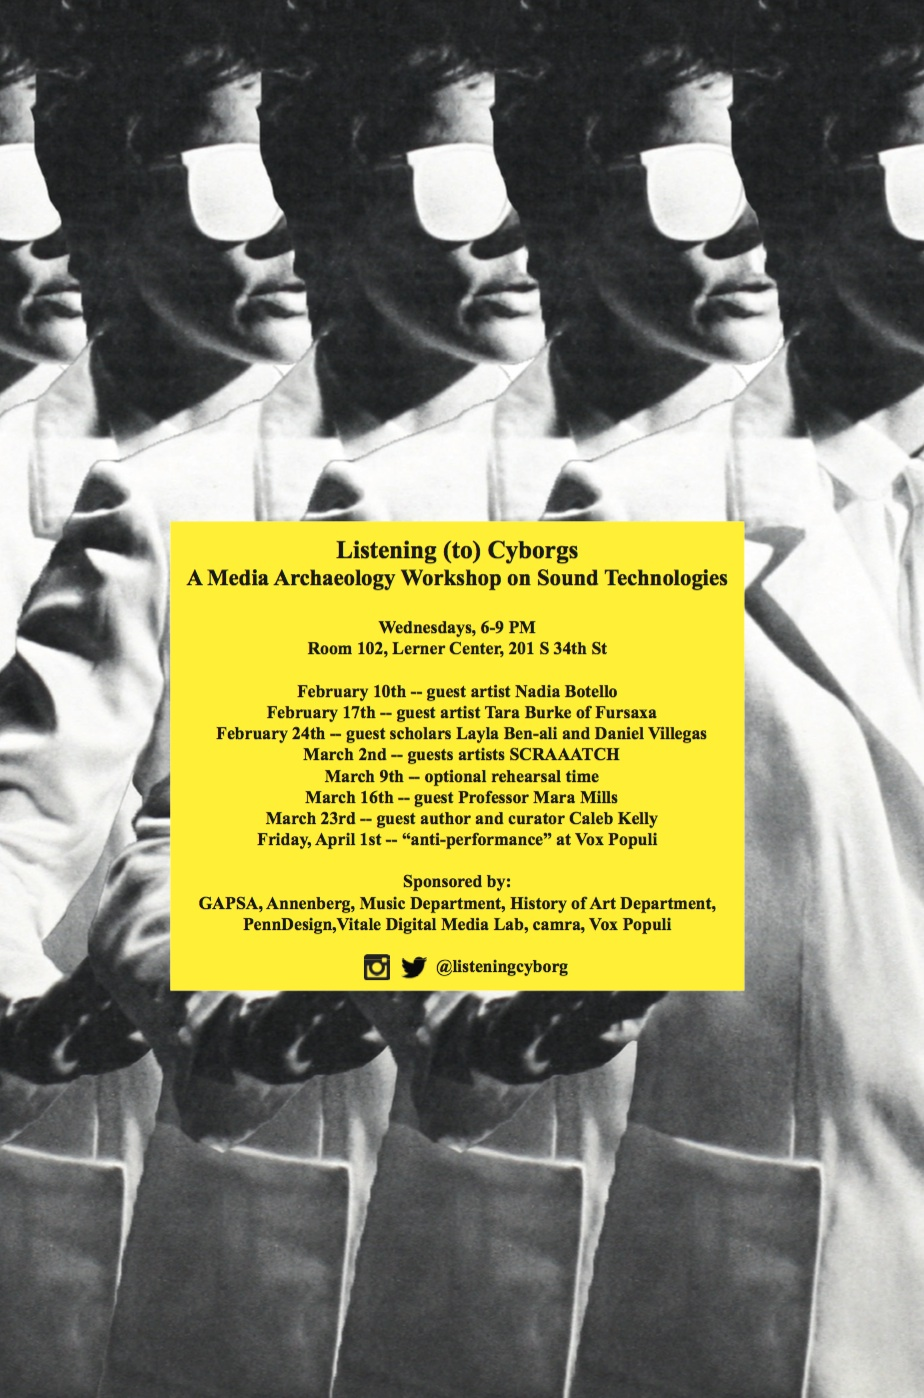 Listening(to)Cyborgs_schedule copy